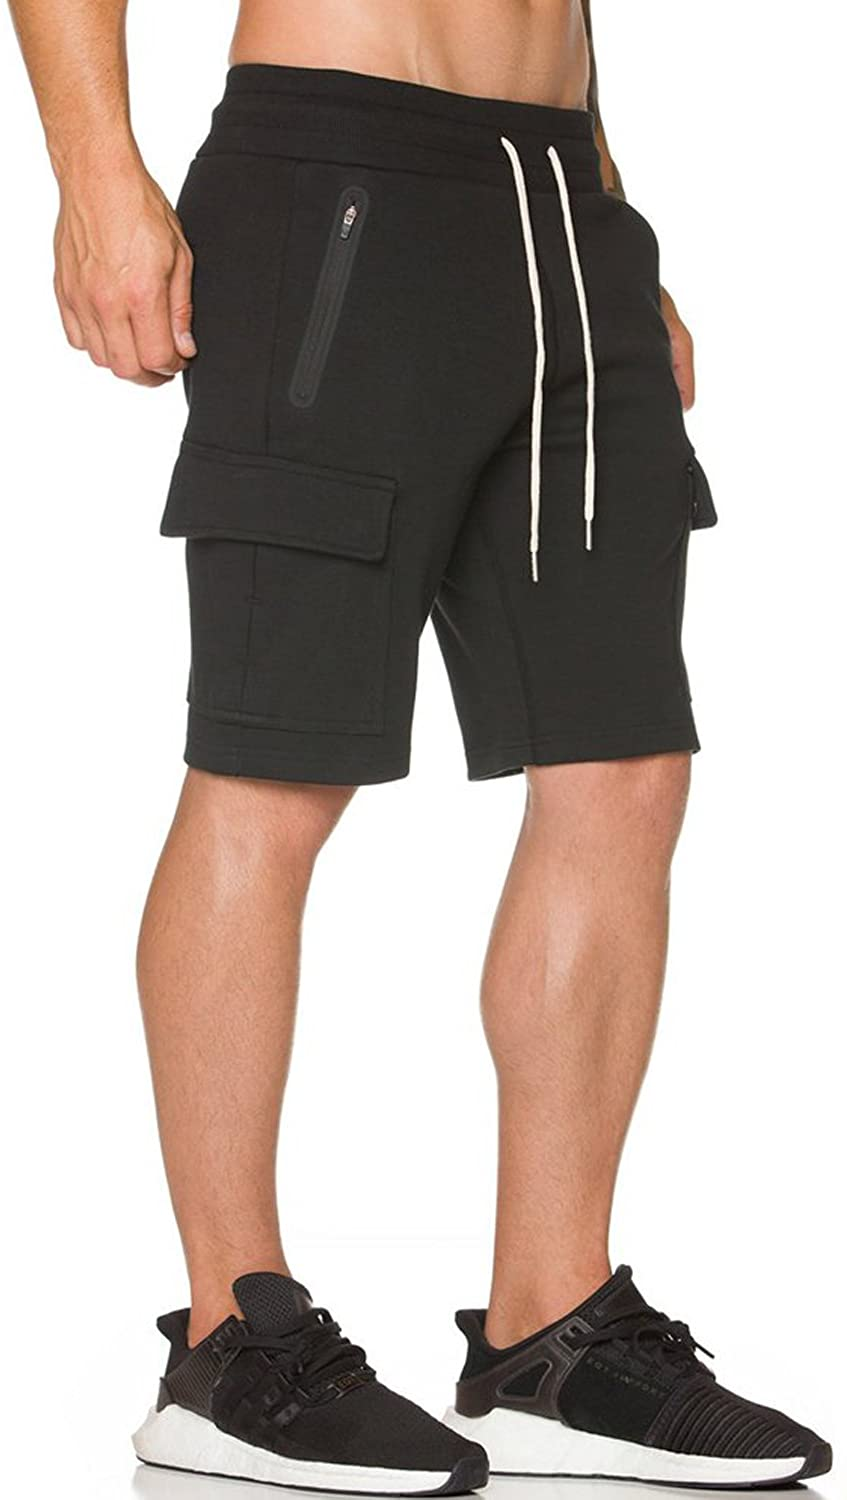 Ouber Men's Fitted Cargo Shorts Casual Workout with Zipper Pockets